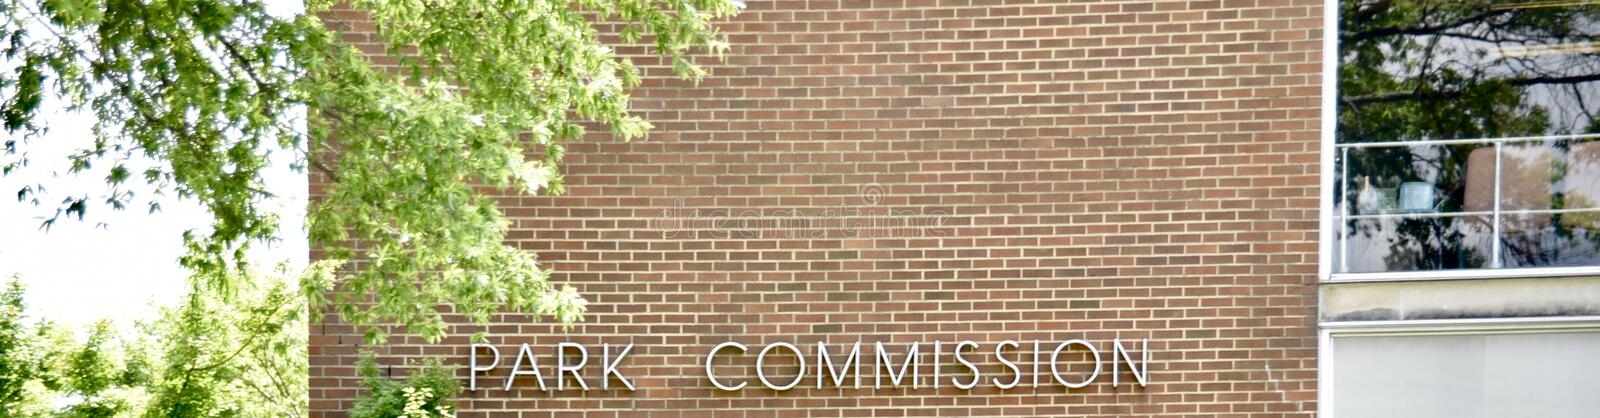 Park Commission. The Park commission is responsible for preserving and protecting historic, architectural and cultural landmarks in the City stock photo